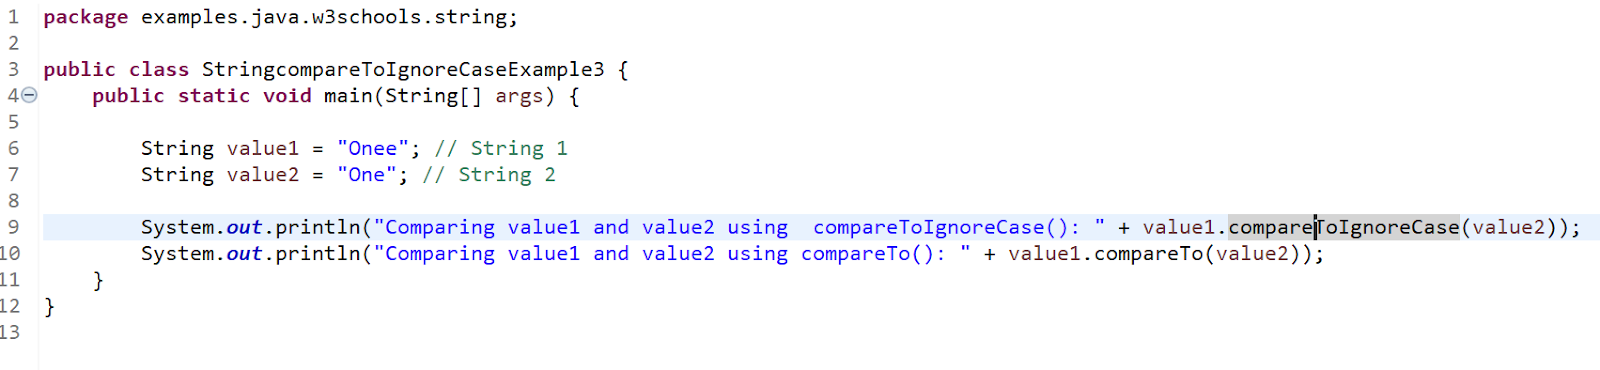 Java String compareToIgnoreCase() example 3